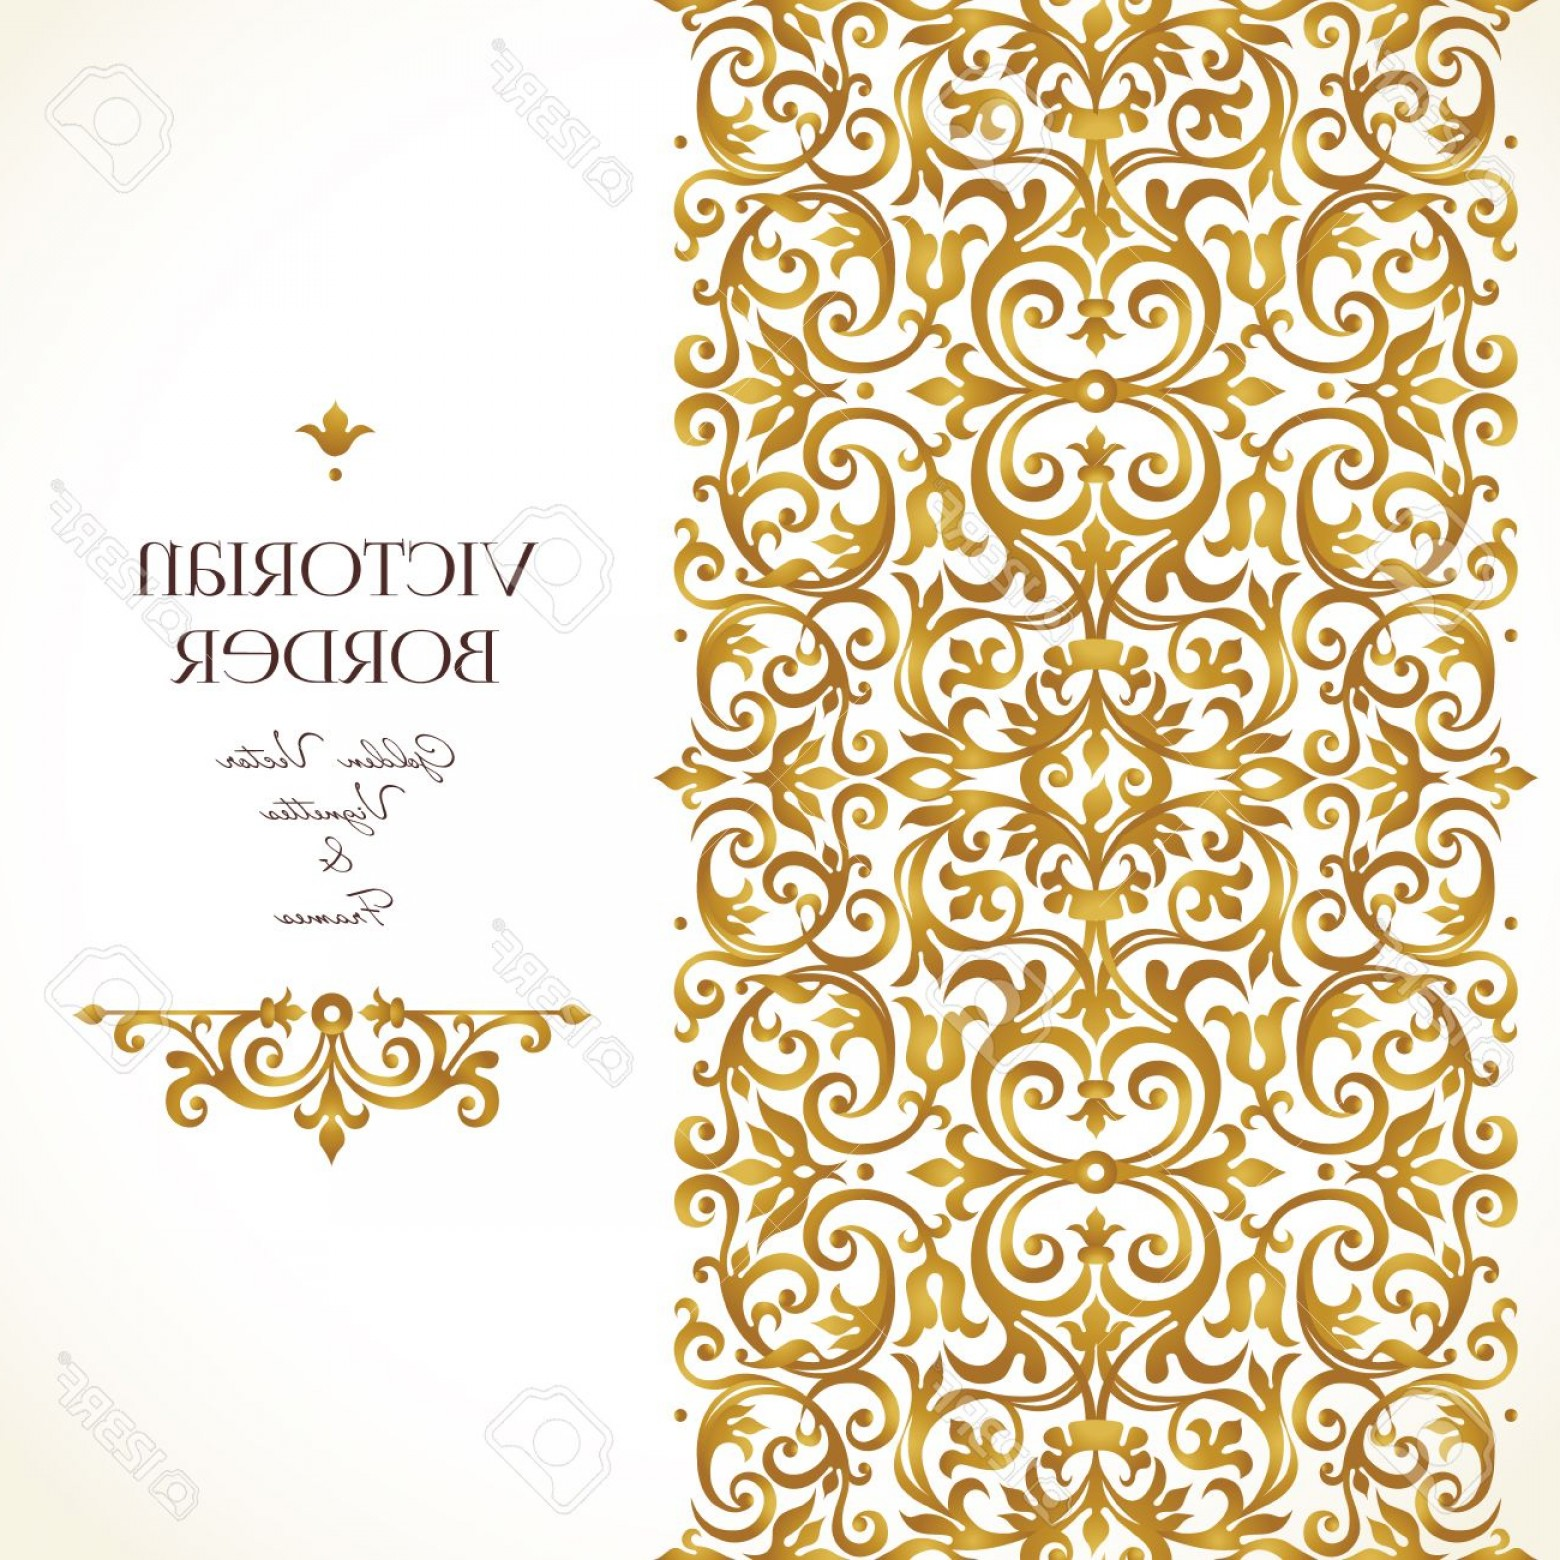 Victorian Style Frame Vector: Photostock Vector Vector Golden Border For Design Template Element In Victorian Style Luxury Floral Frame Frieze And V